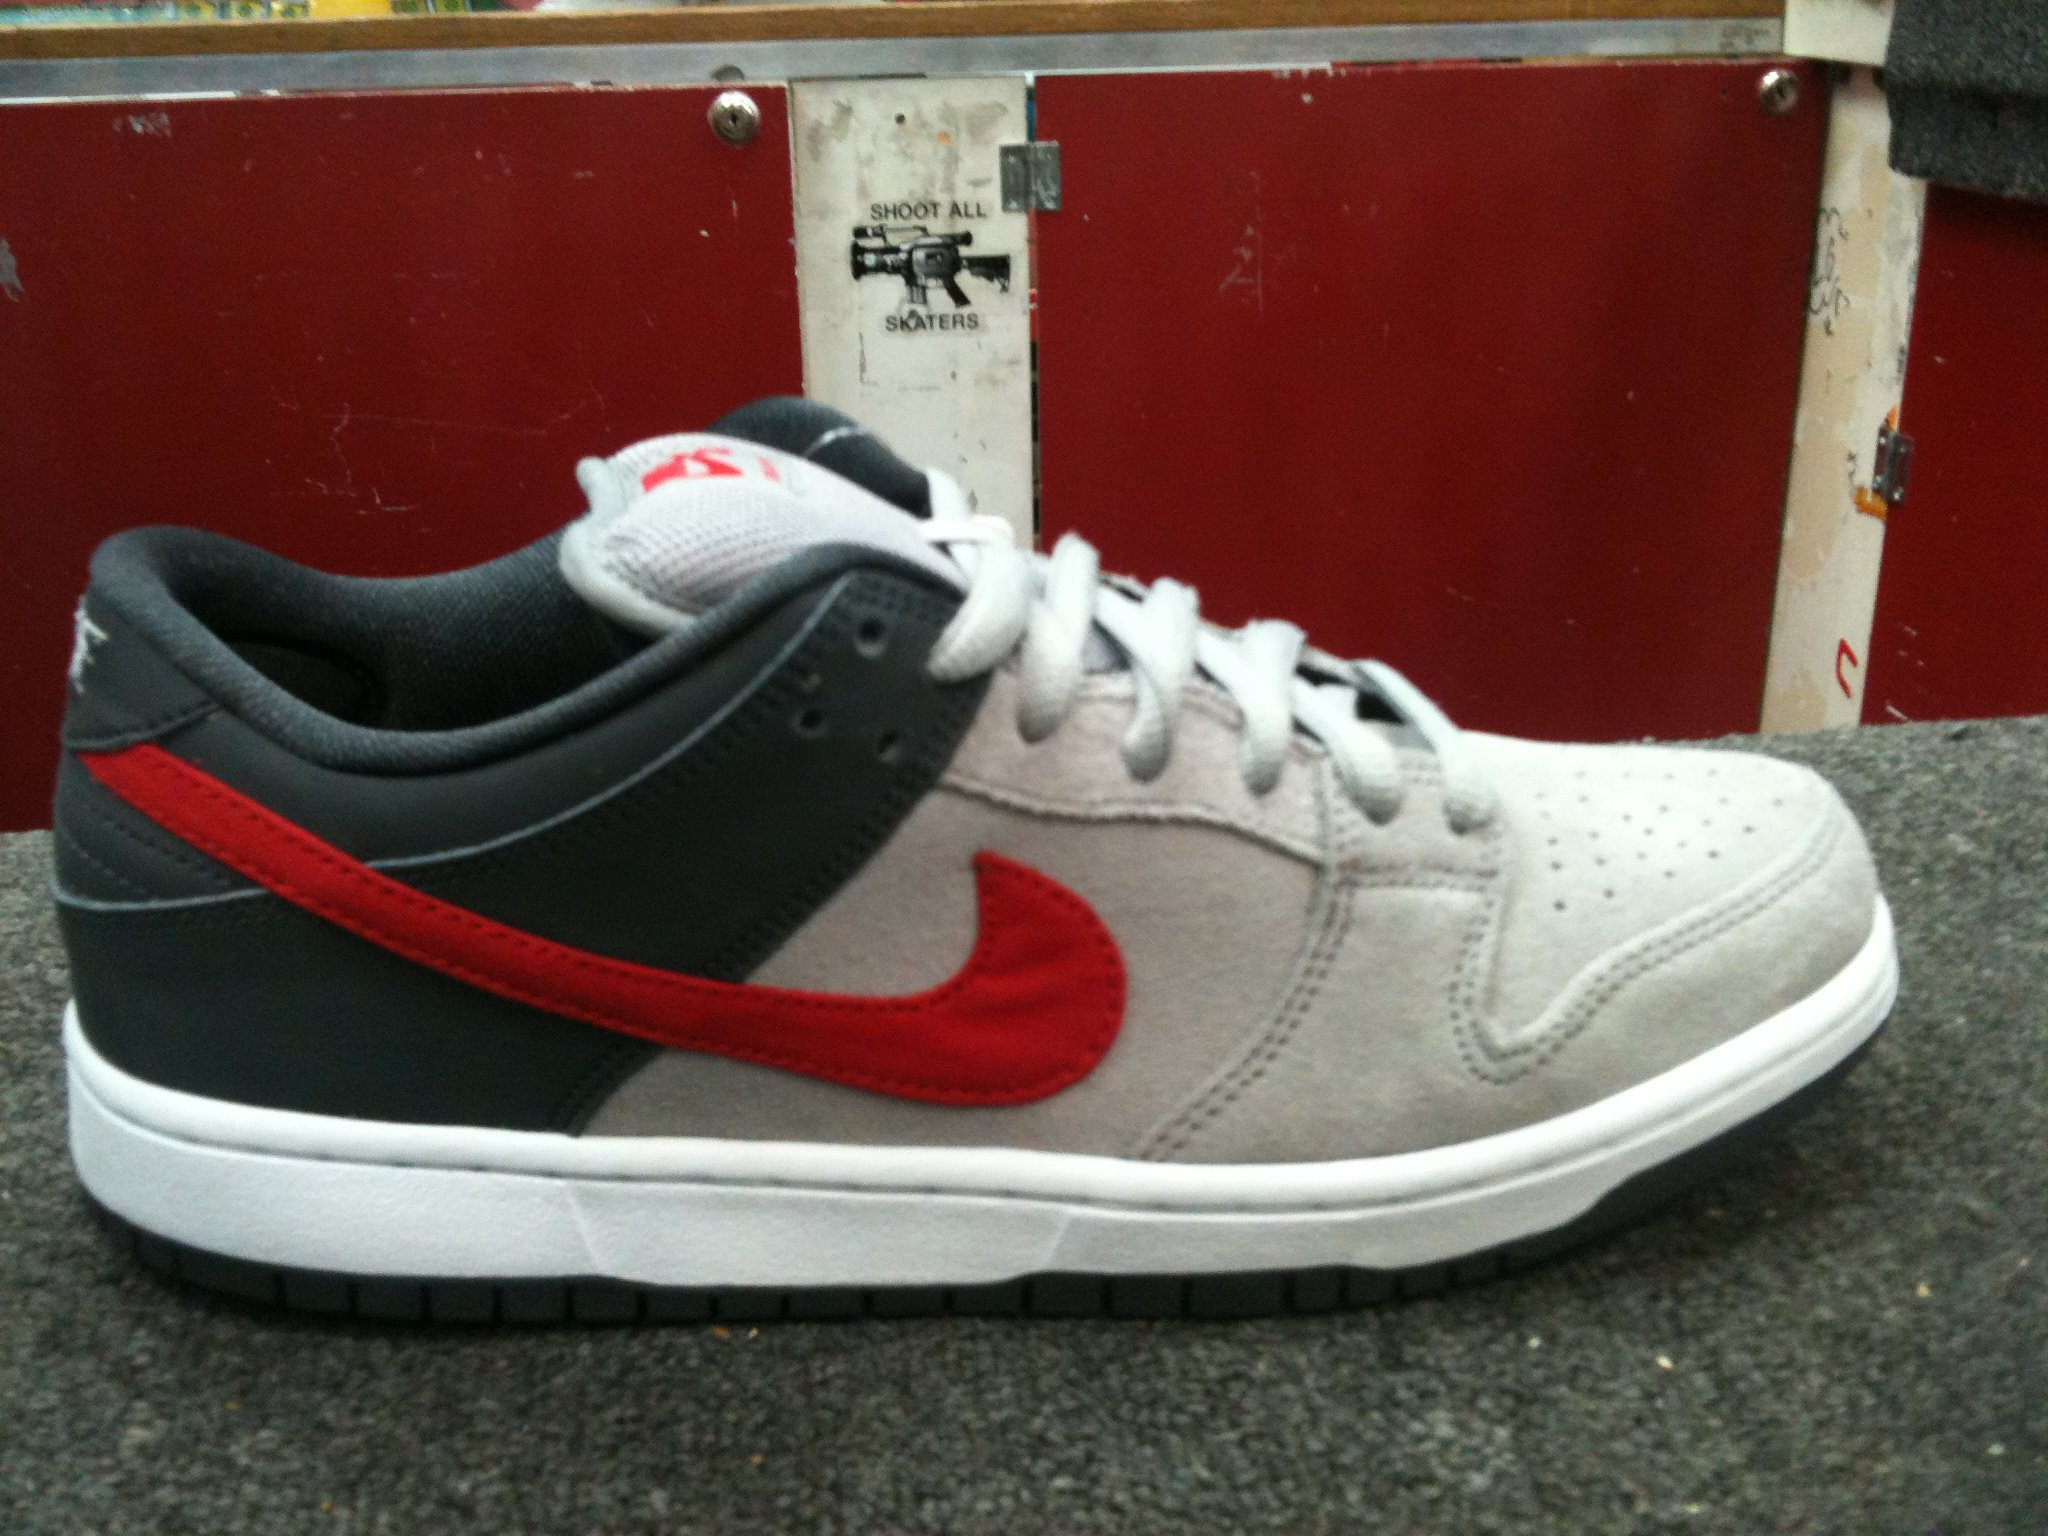 Nike SB Dunk Low 'Grey/Black-Red' - Summer 2013